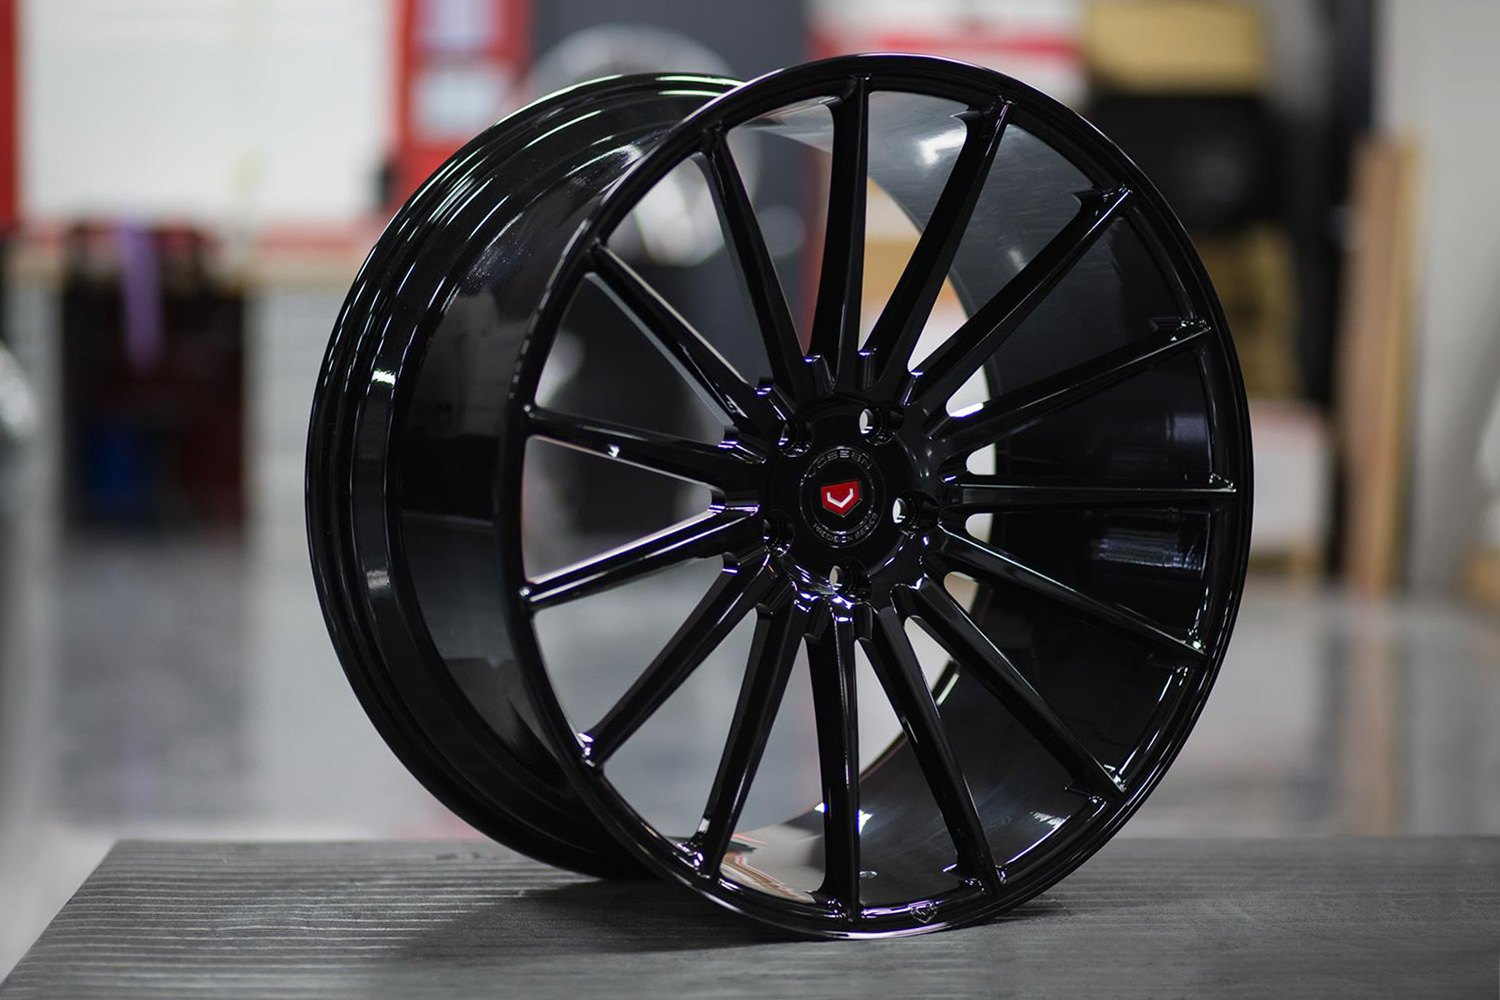 Vossen 174 Vps 305 Wheels Custom Painted Rims